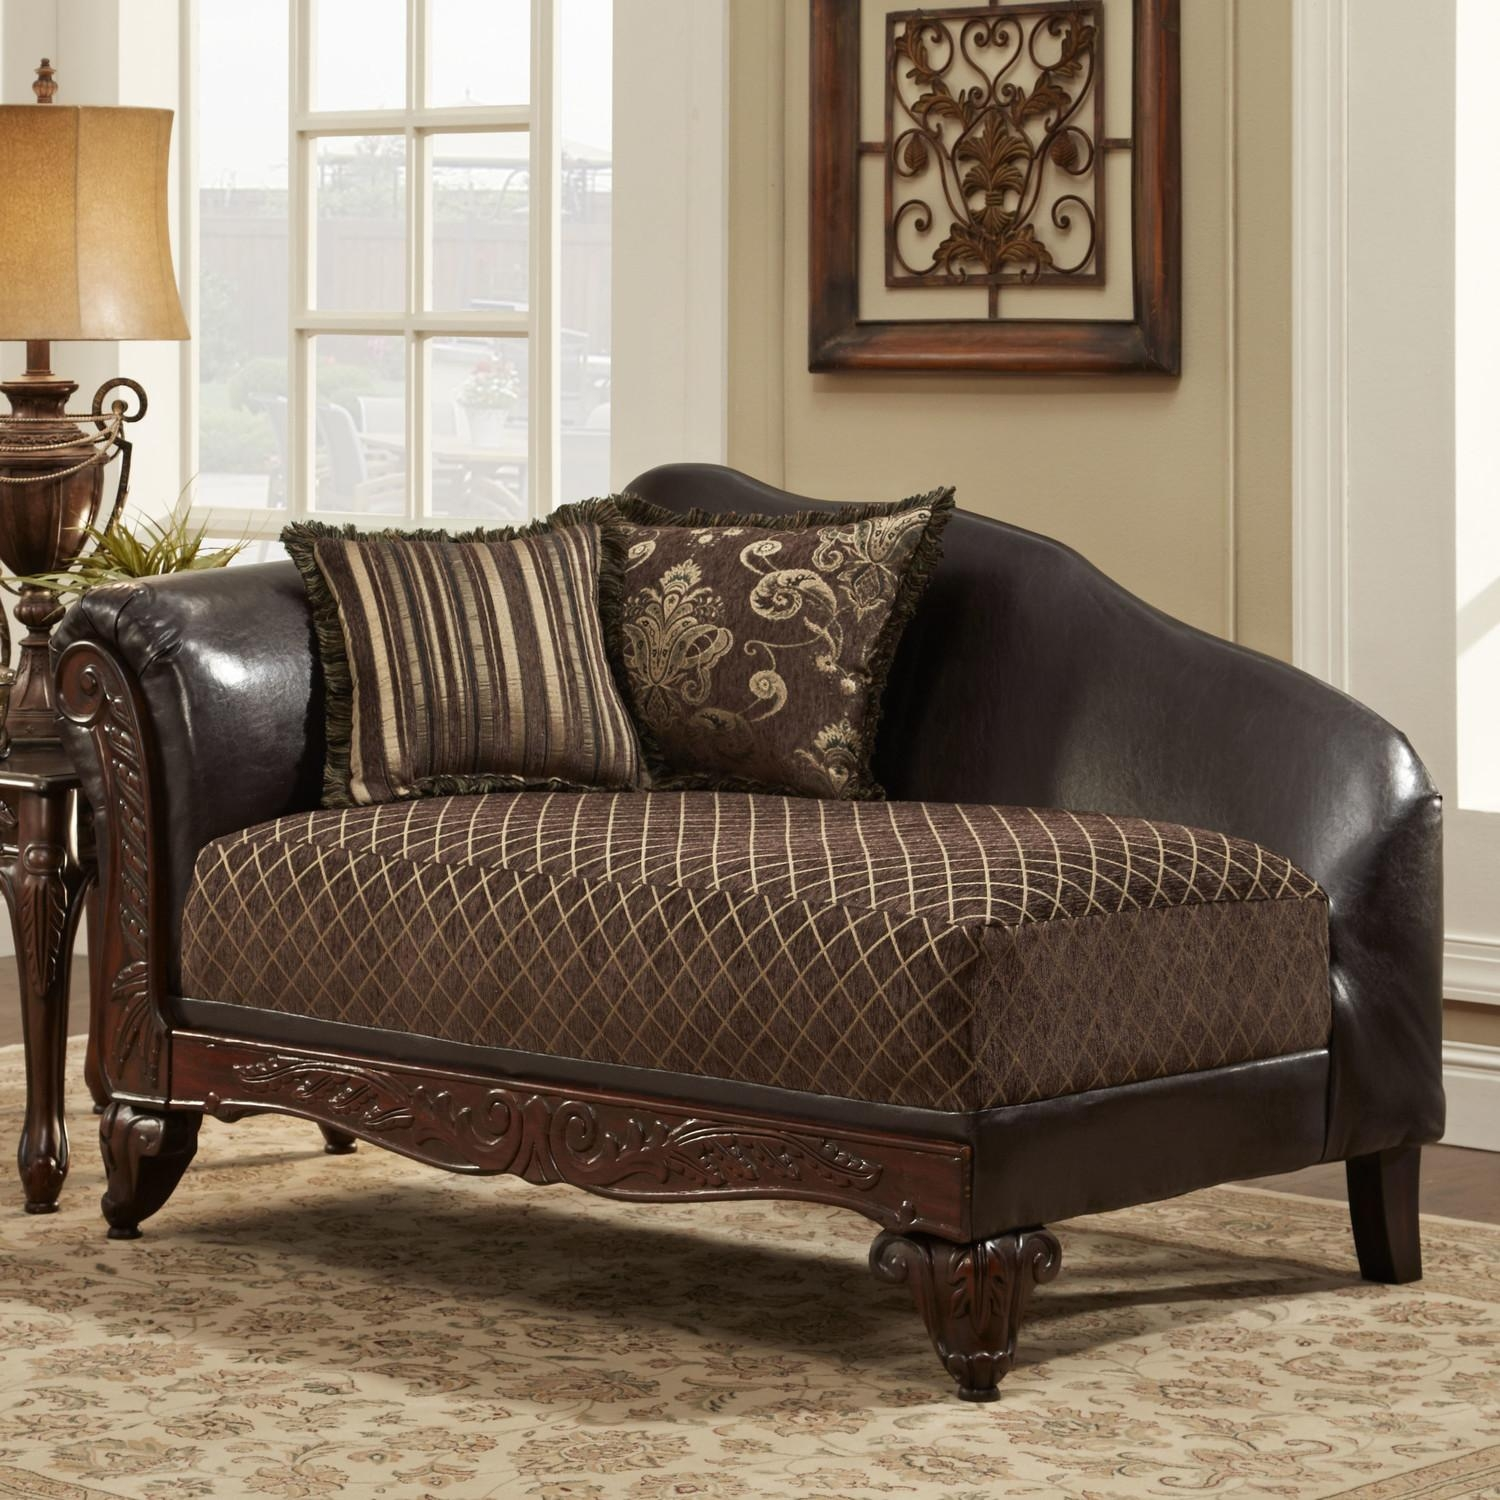 Furniture: Leather Sofa Chaise | Leather Chaise | Leather Chaise In Sofa Lounge Chairs (View 2 of 20)